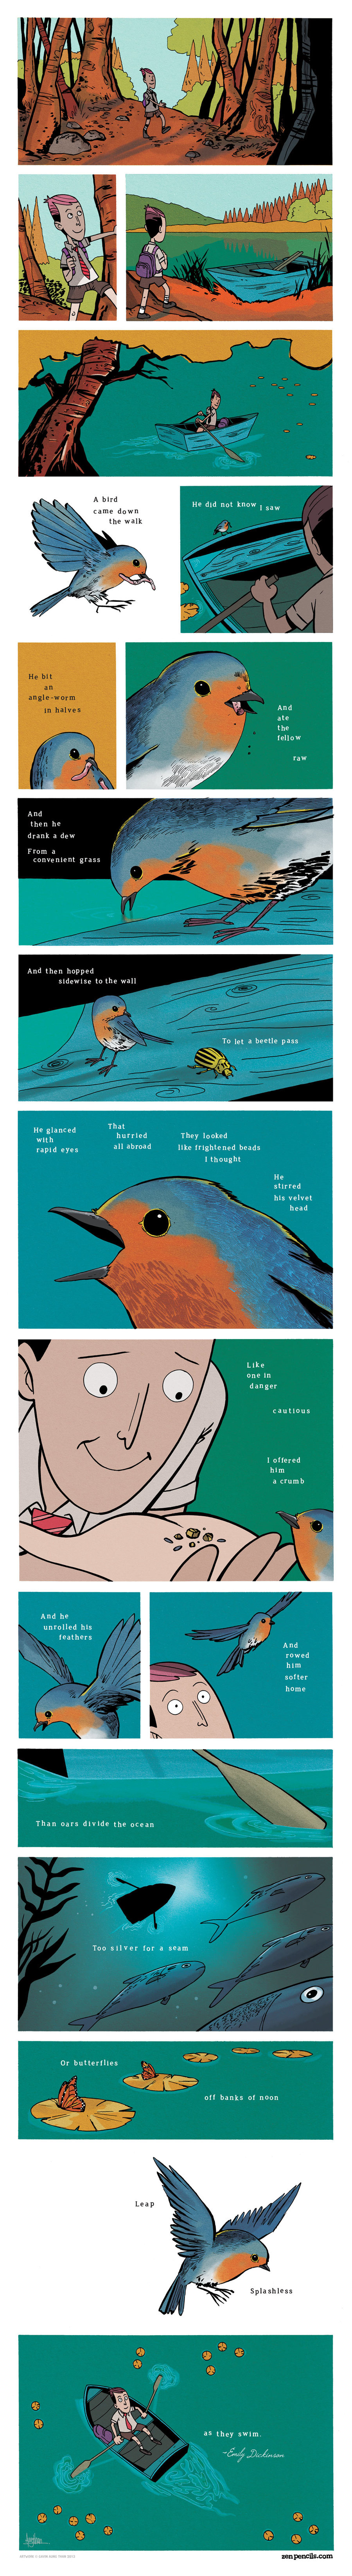 Zen Pencils Comic Strip for February 14, 2014